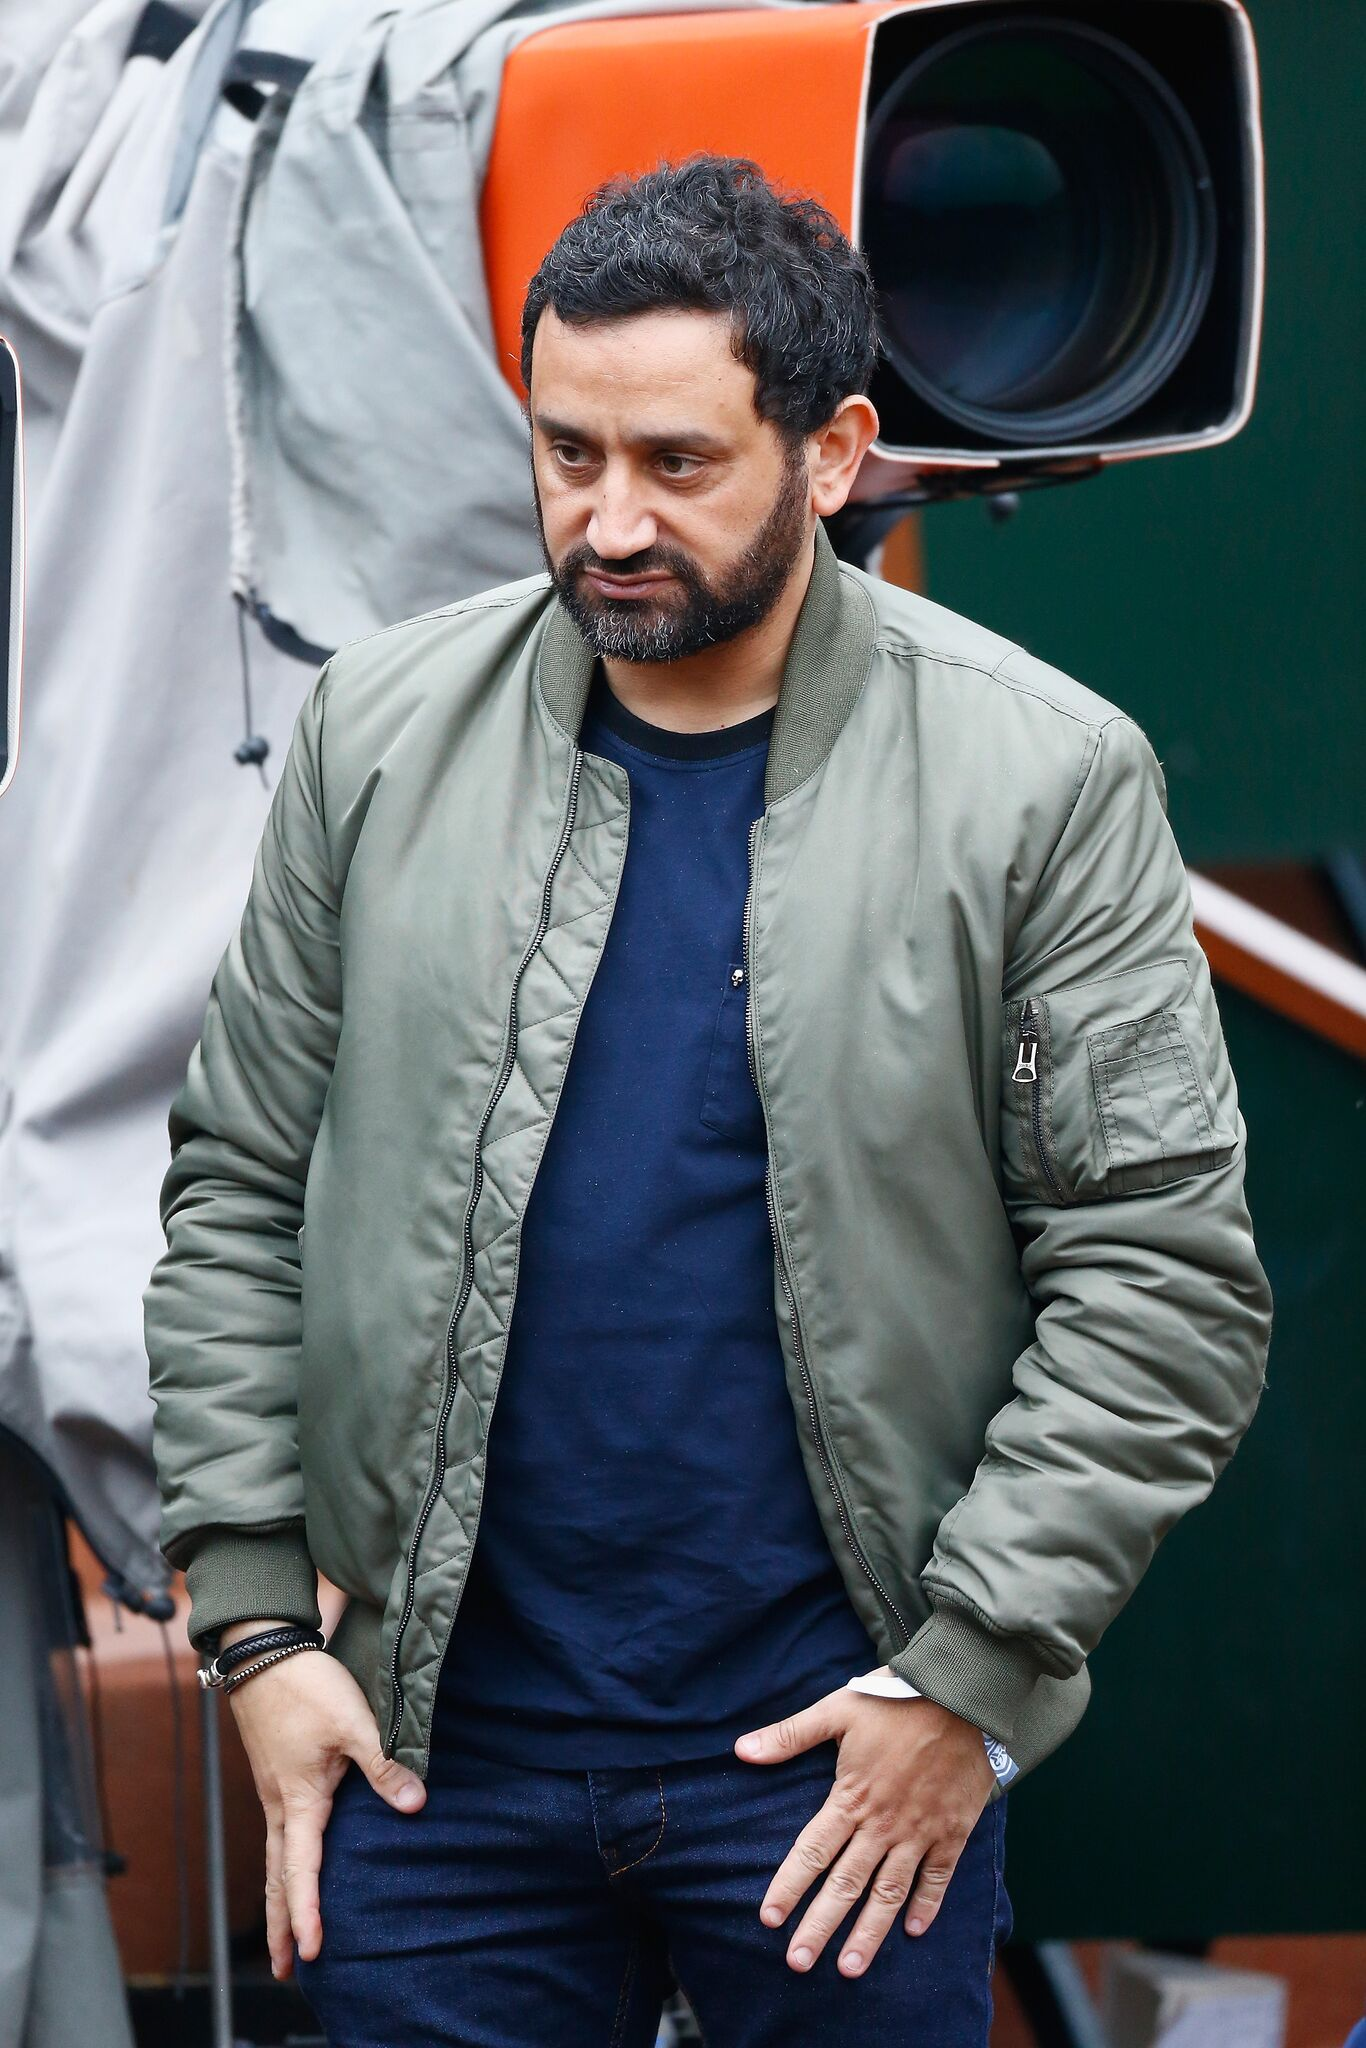 L'animateur Cyril Hanouna. l Source : Getty Images